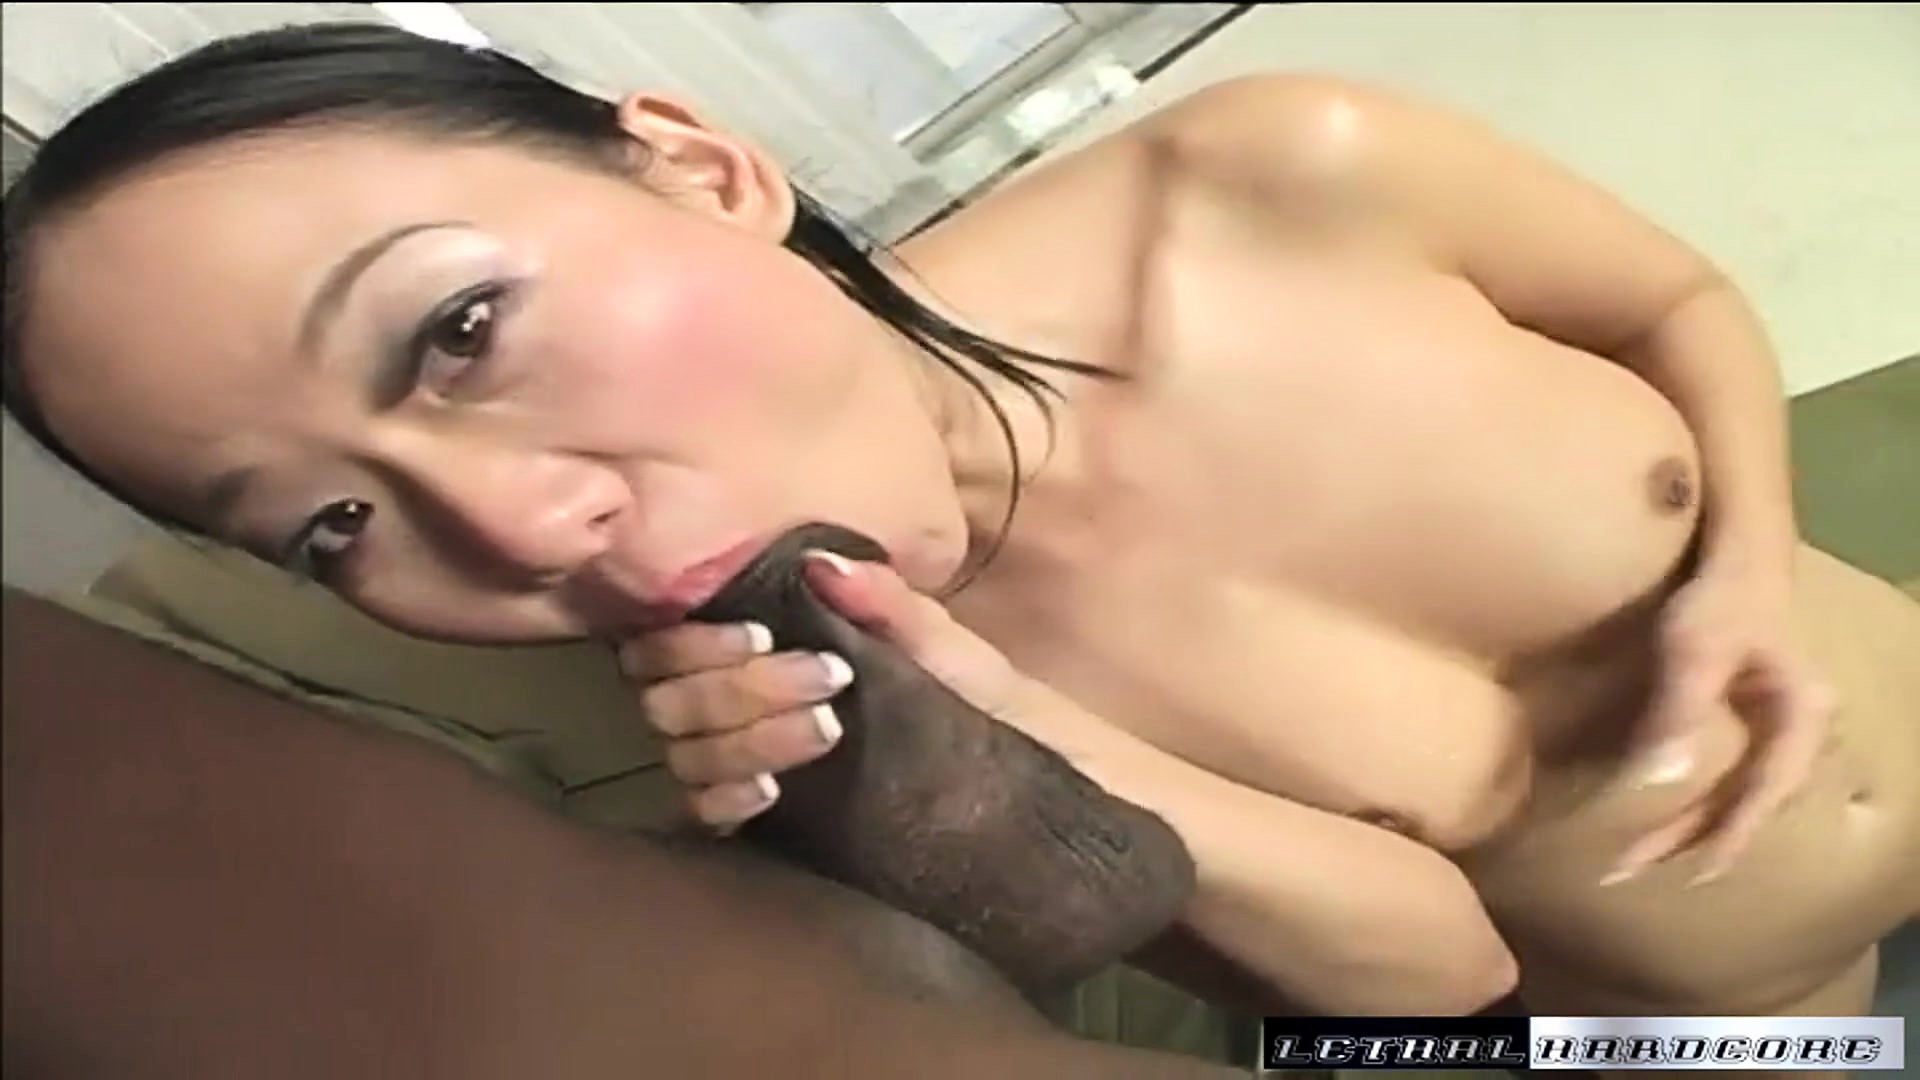 Free Mobile Porn & Sex Videos & Sex Movies - Charming Asian Girl In  Stockings Niya Yu Gets Hammered By A Black Stud - 417746 - ProPorn.com